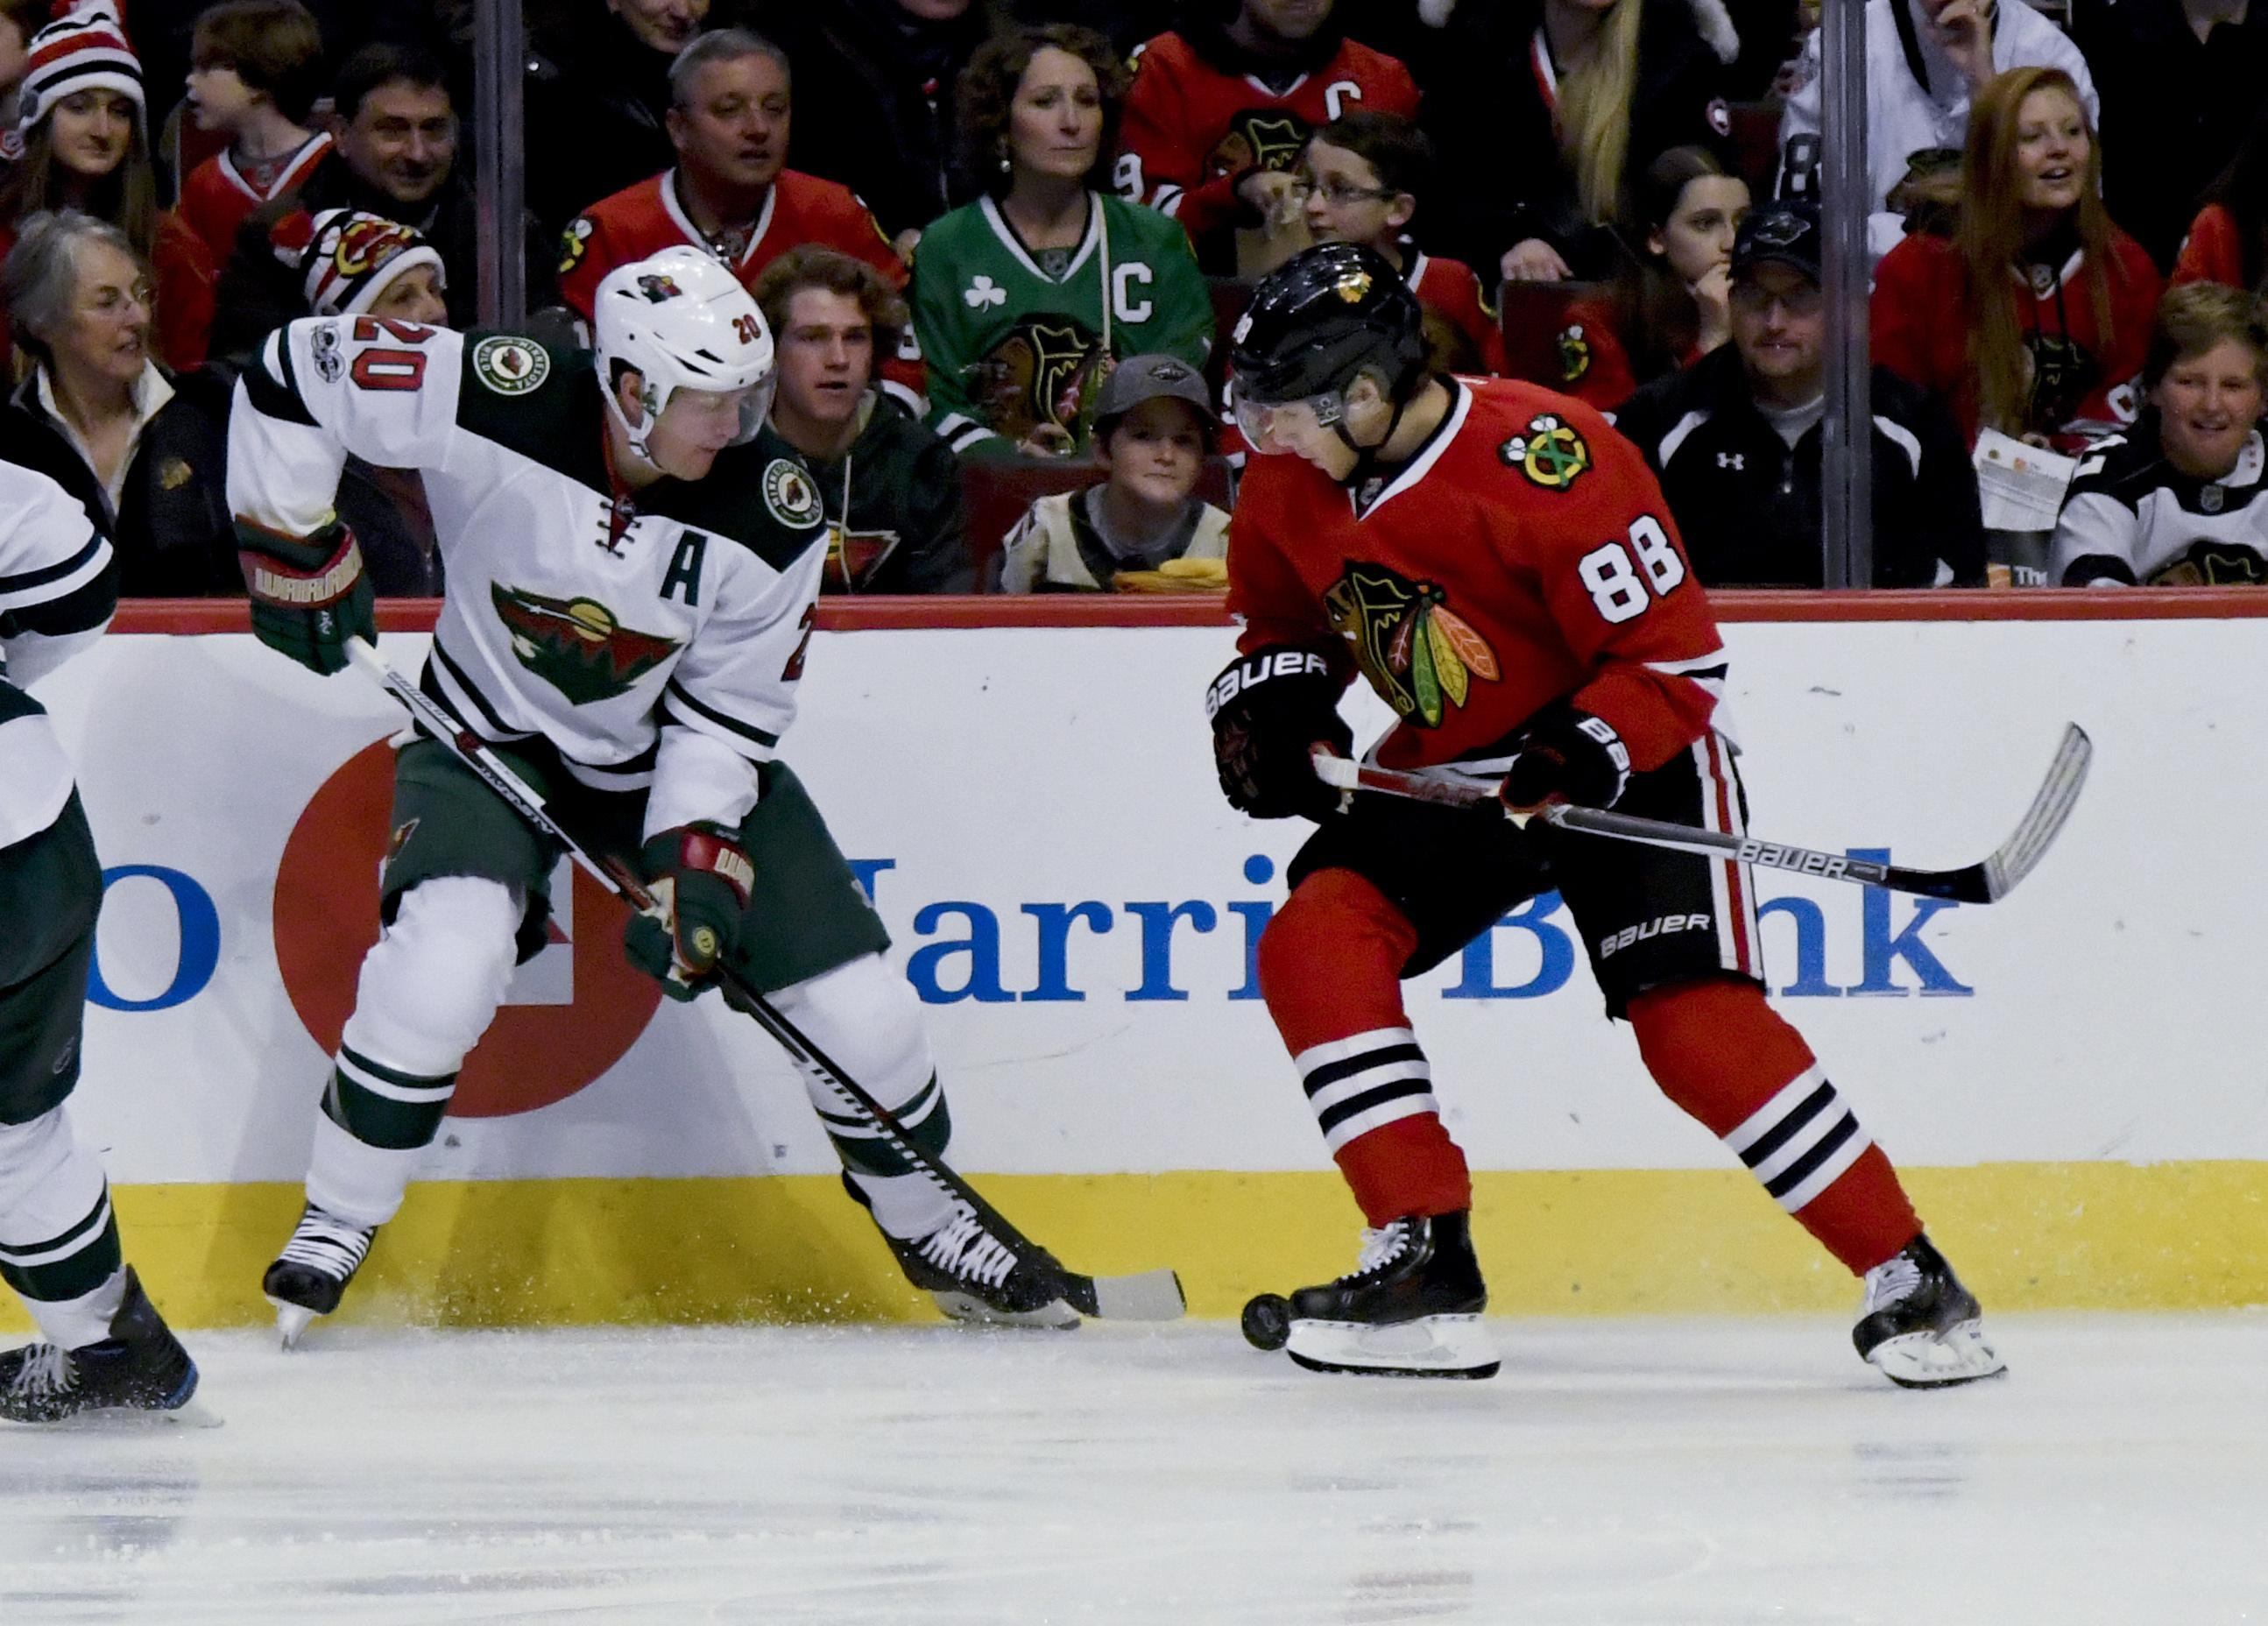 Wild_blackhawks_hockey_42577